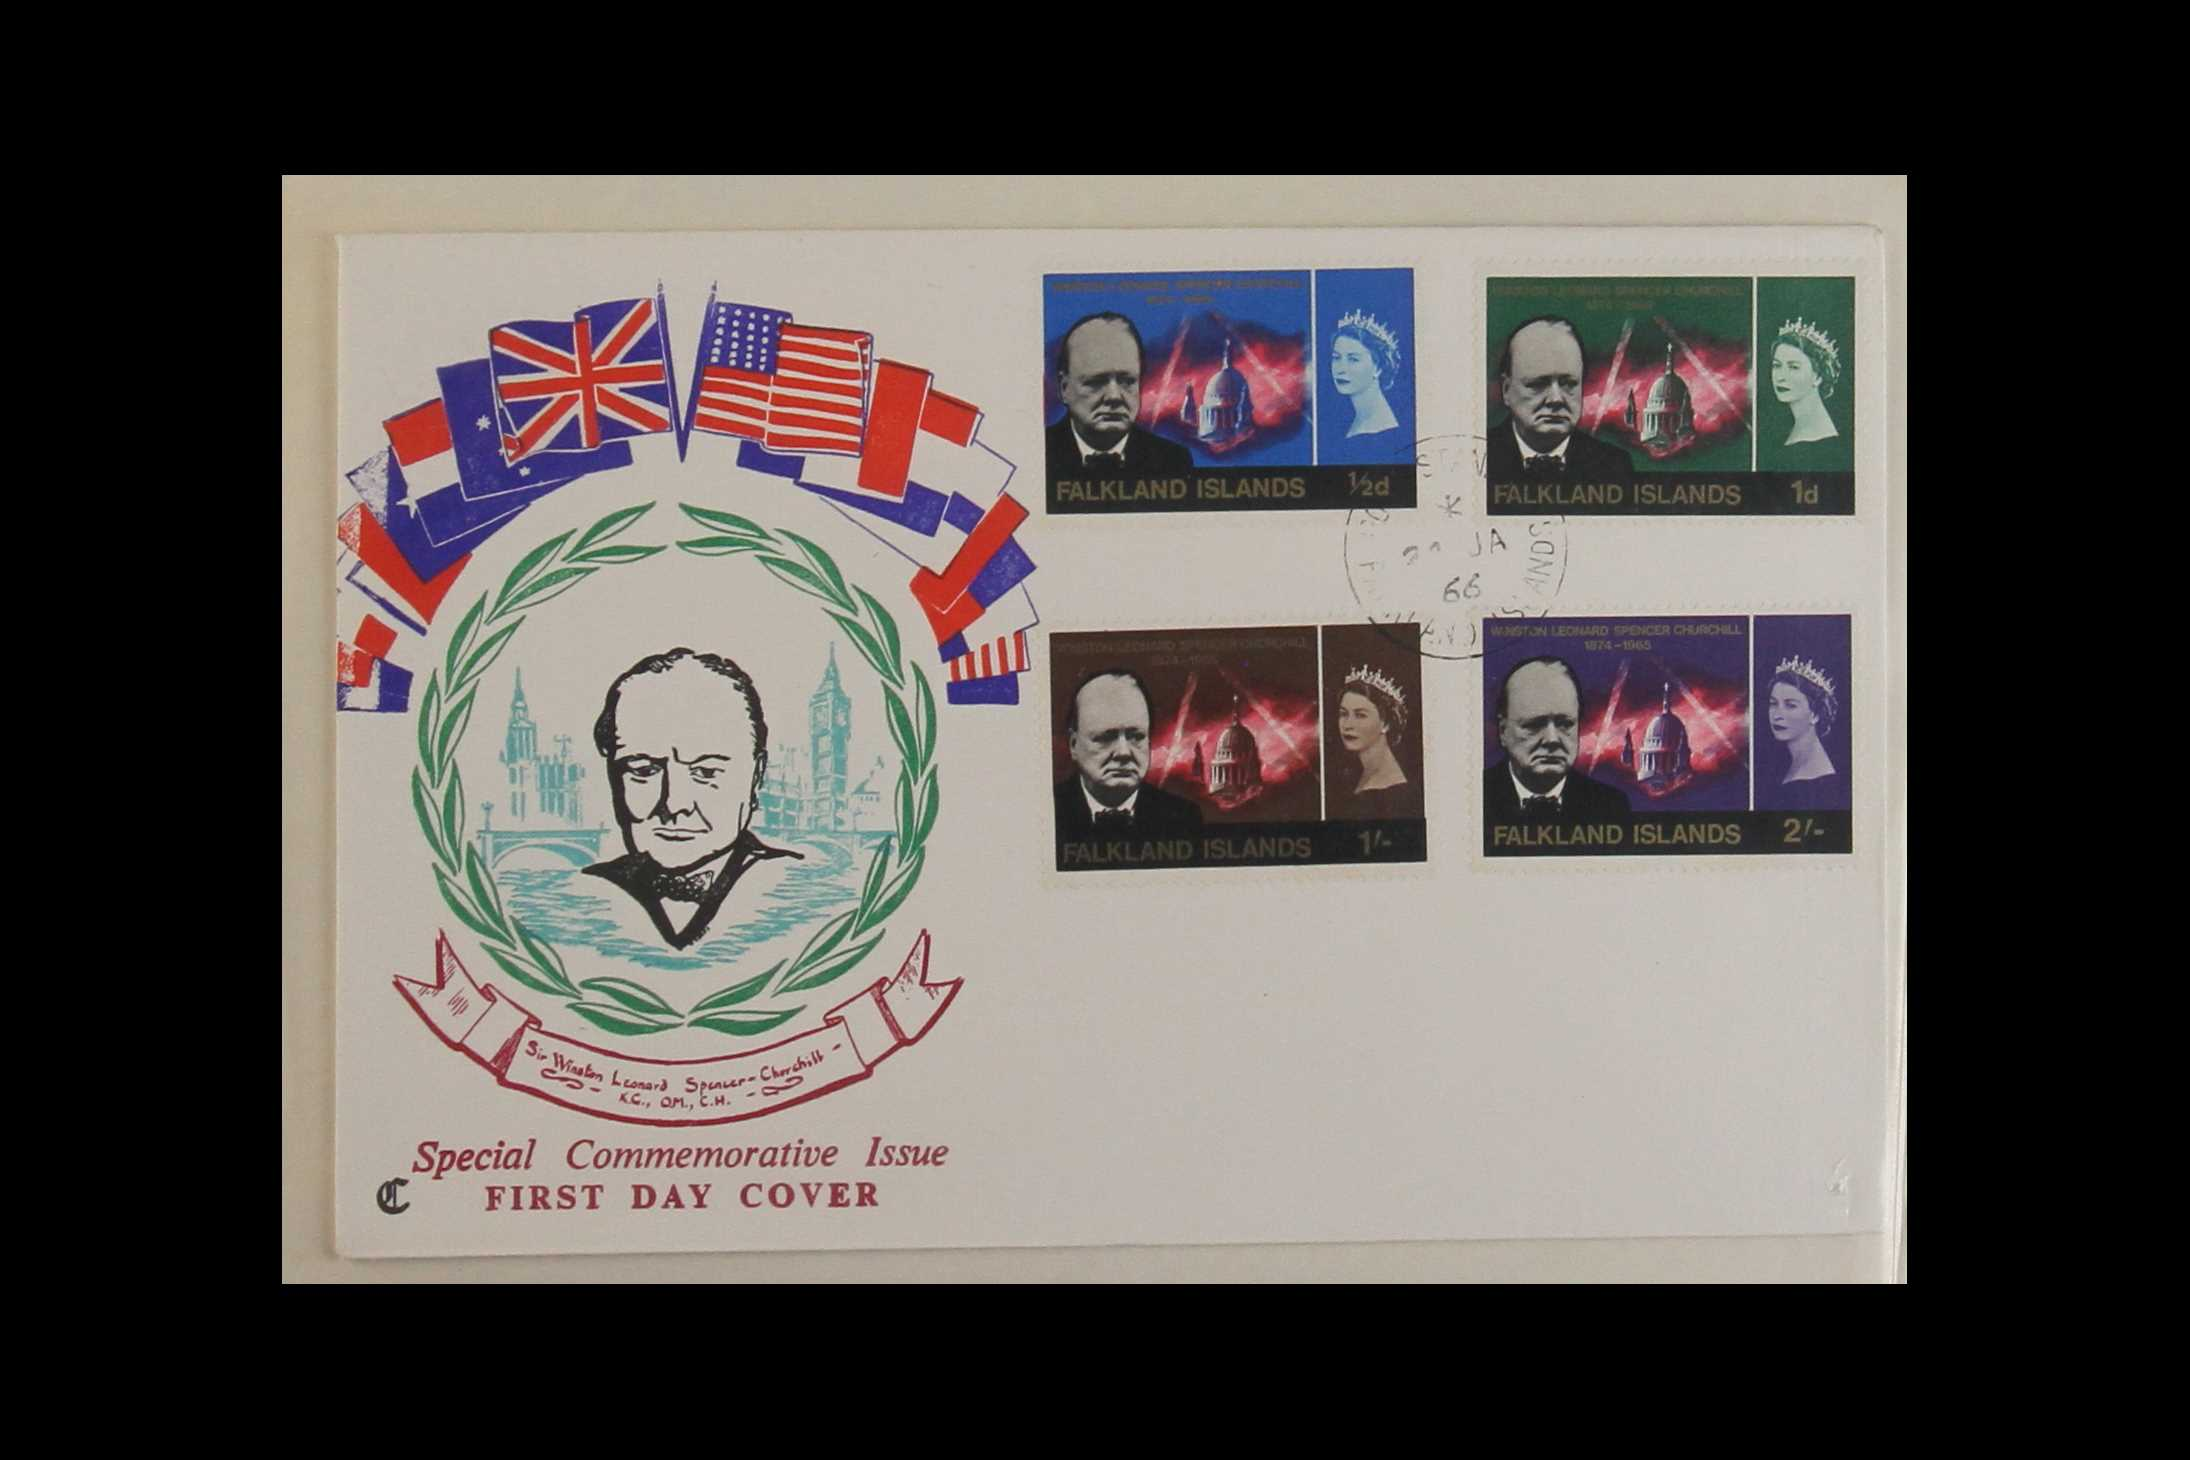 TOPICALS WINSTON CHURCHILL 1965-74 collection incl. 1965 sets on illustrated unaddressed FDC's incl. - Image 7 of 9